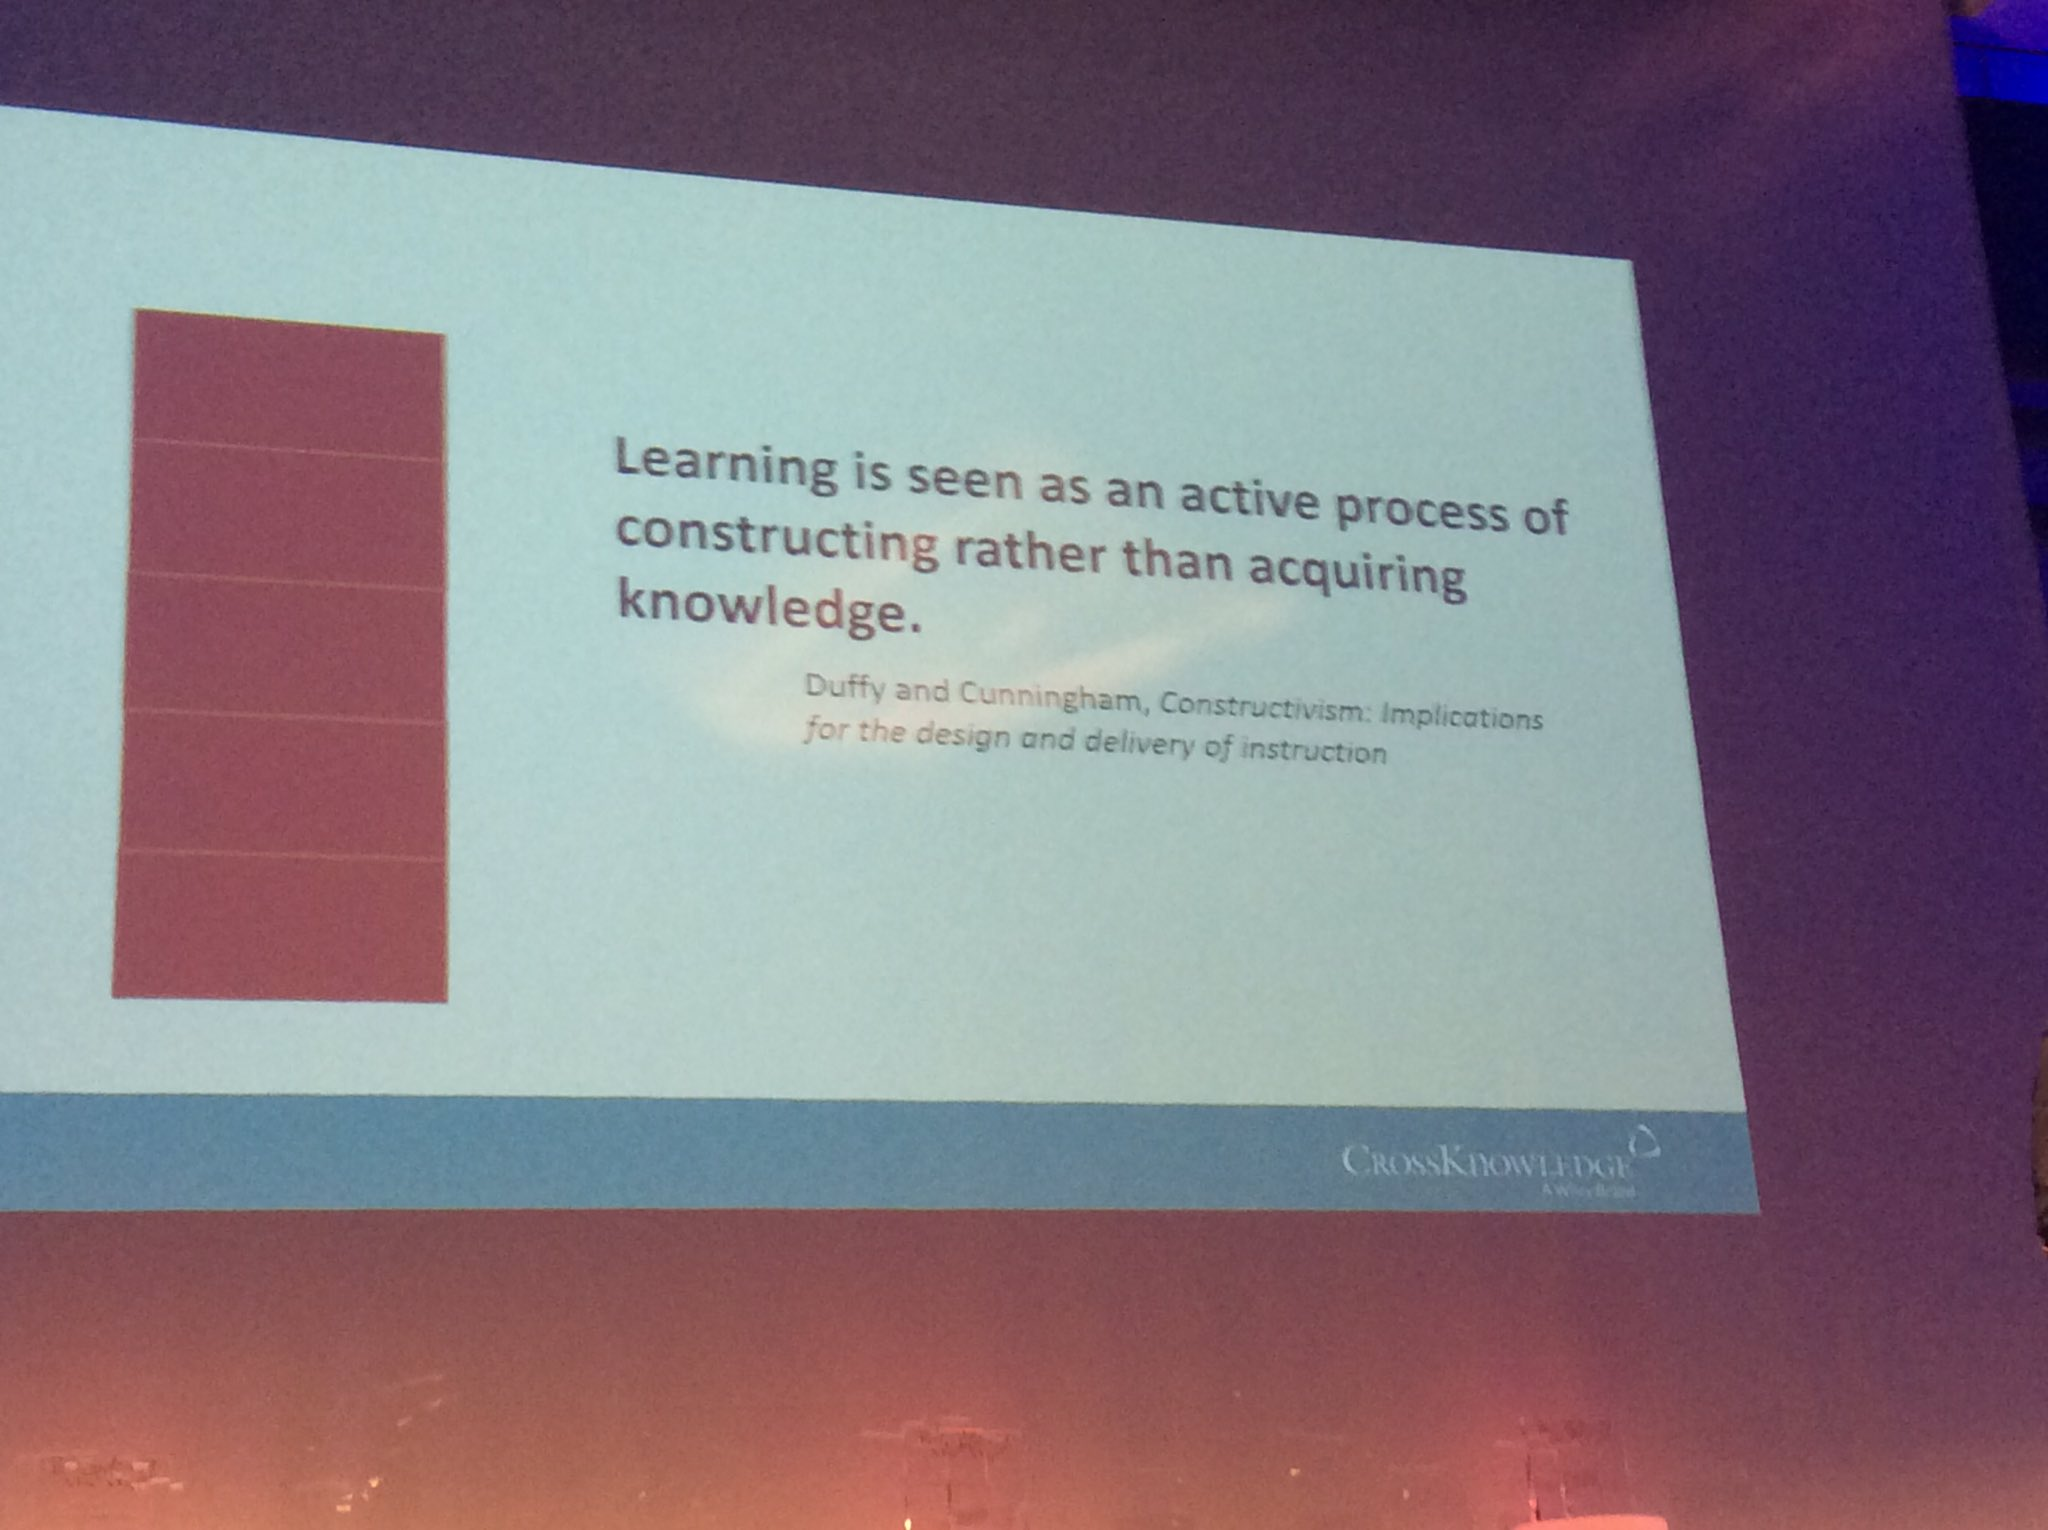 Anke Baak On Twitter Learning Is Constructing Knowledge Together Cktalent16 Https T Co 6rrovsmky0